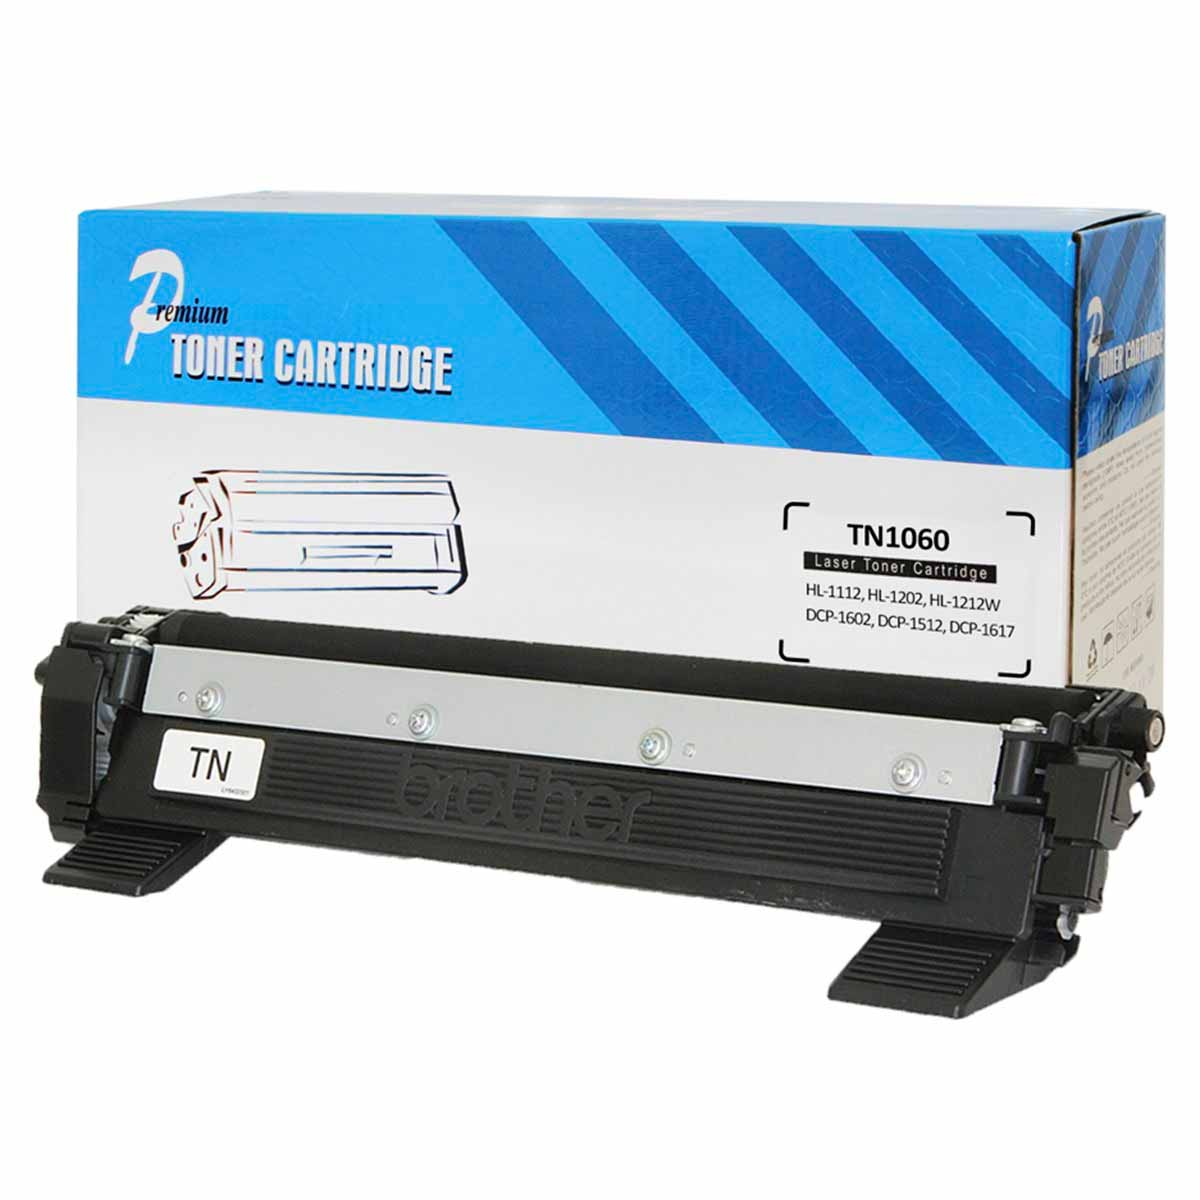 CARTUCHO BROTHER HL-1112/DCP1512 (TN1060) COMPATIVEL